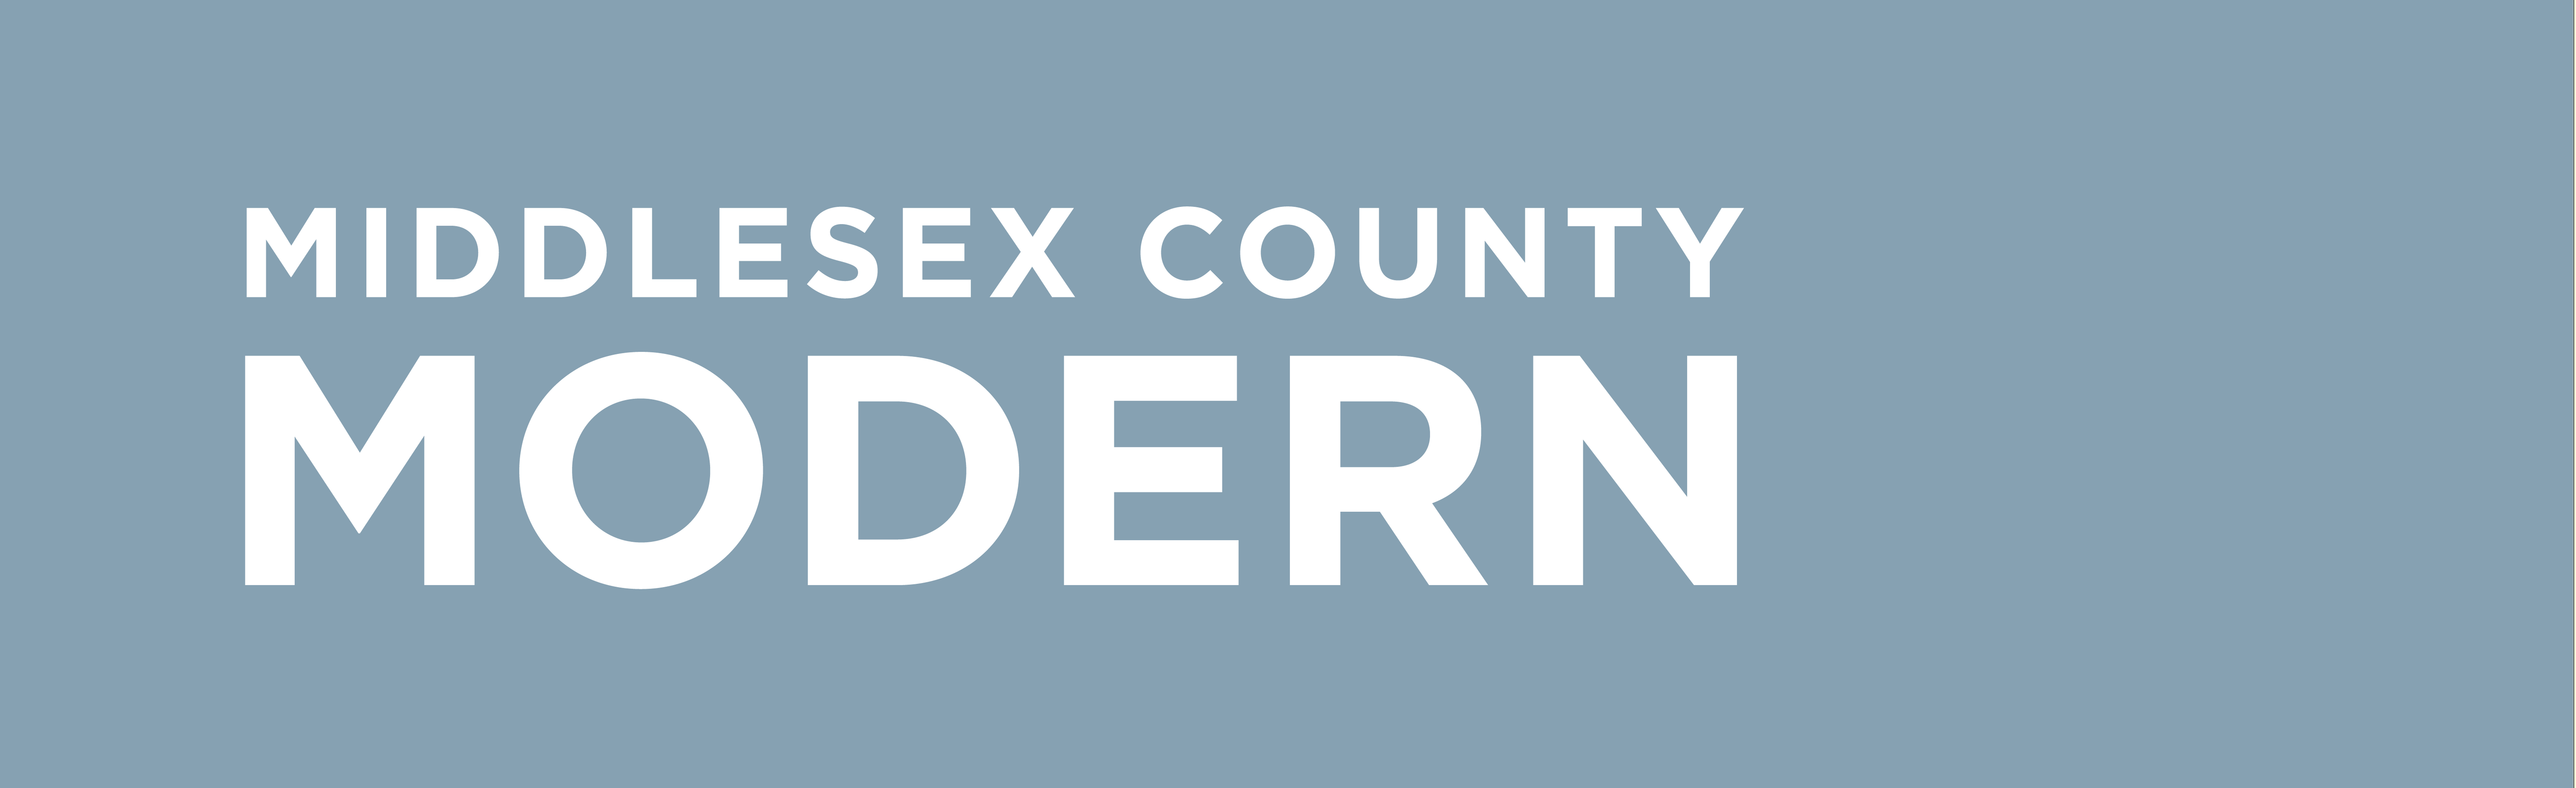 Middlesex County Modern